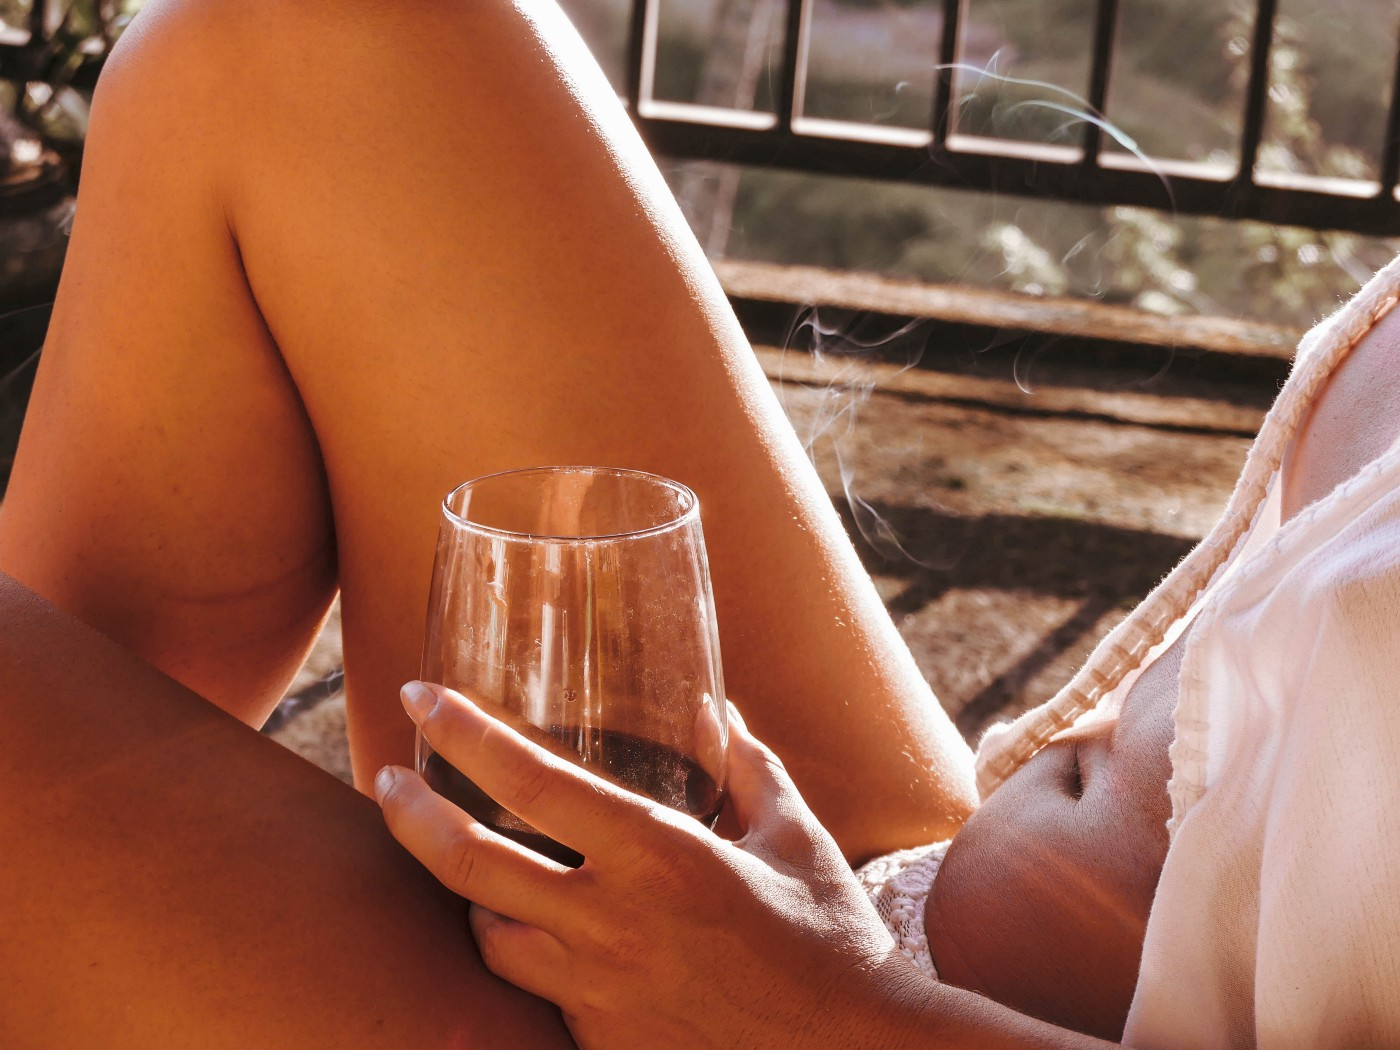 Partial view of a scantily clad woman holding a stemless glass of wine